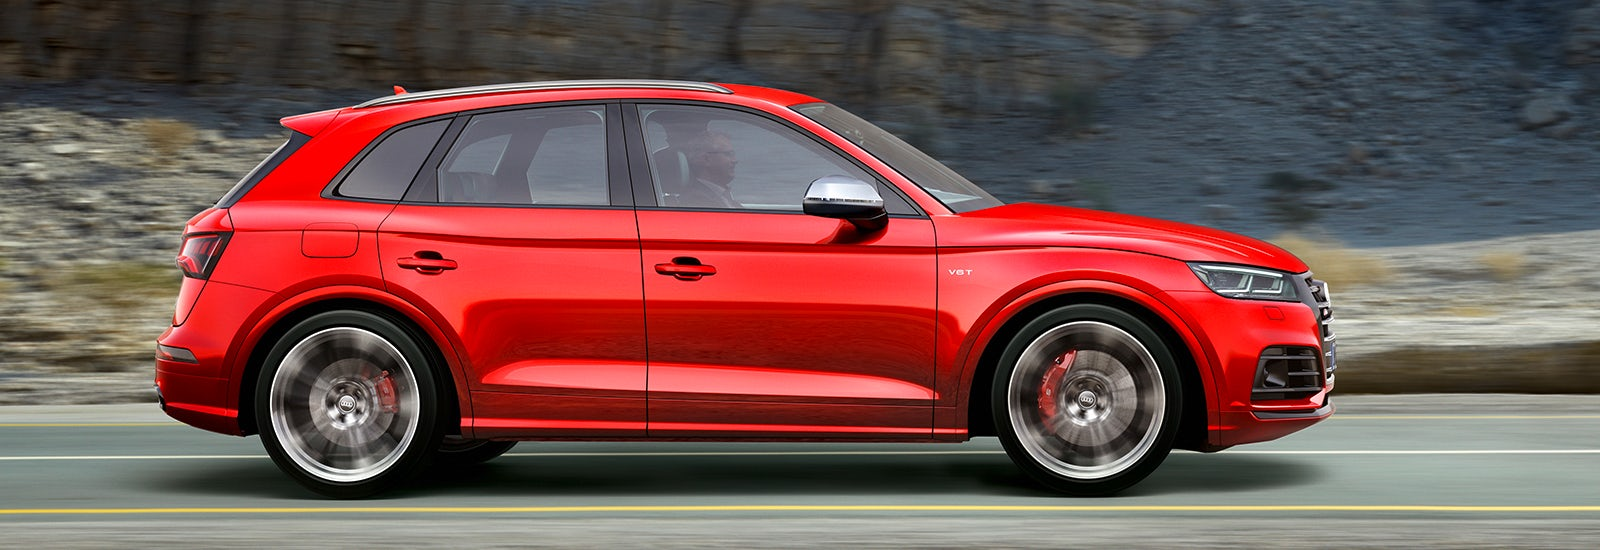 2018 audi rs q5 price specs and release date carwow. Black Bedroom Furniture Sets. Home Design Ideas